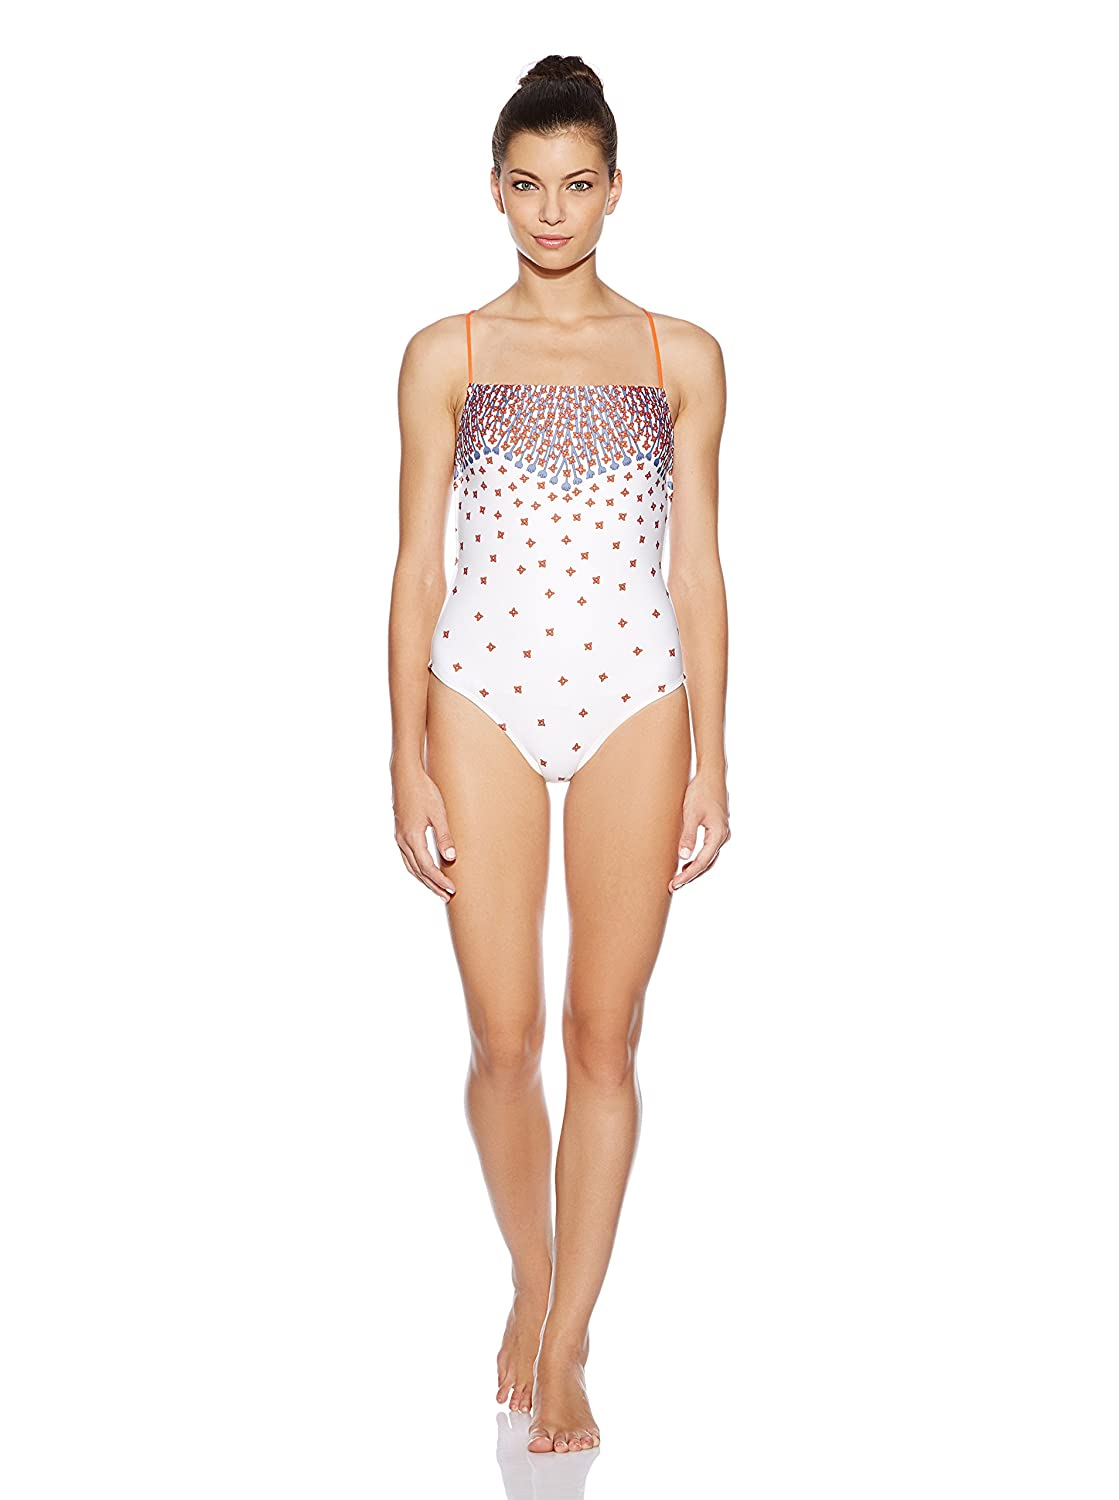 9f2b0aa40df Amazon.com: Marc by Marc Jacobs Chrissie's Floral Cross Back Maillot  Whisper White (MD (US 8)): Clothing